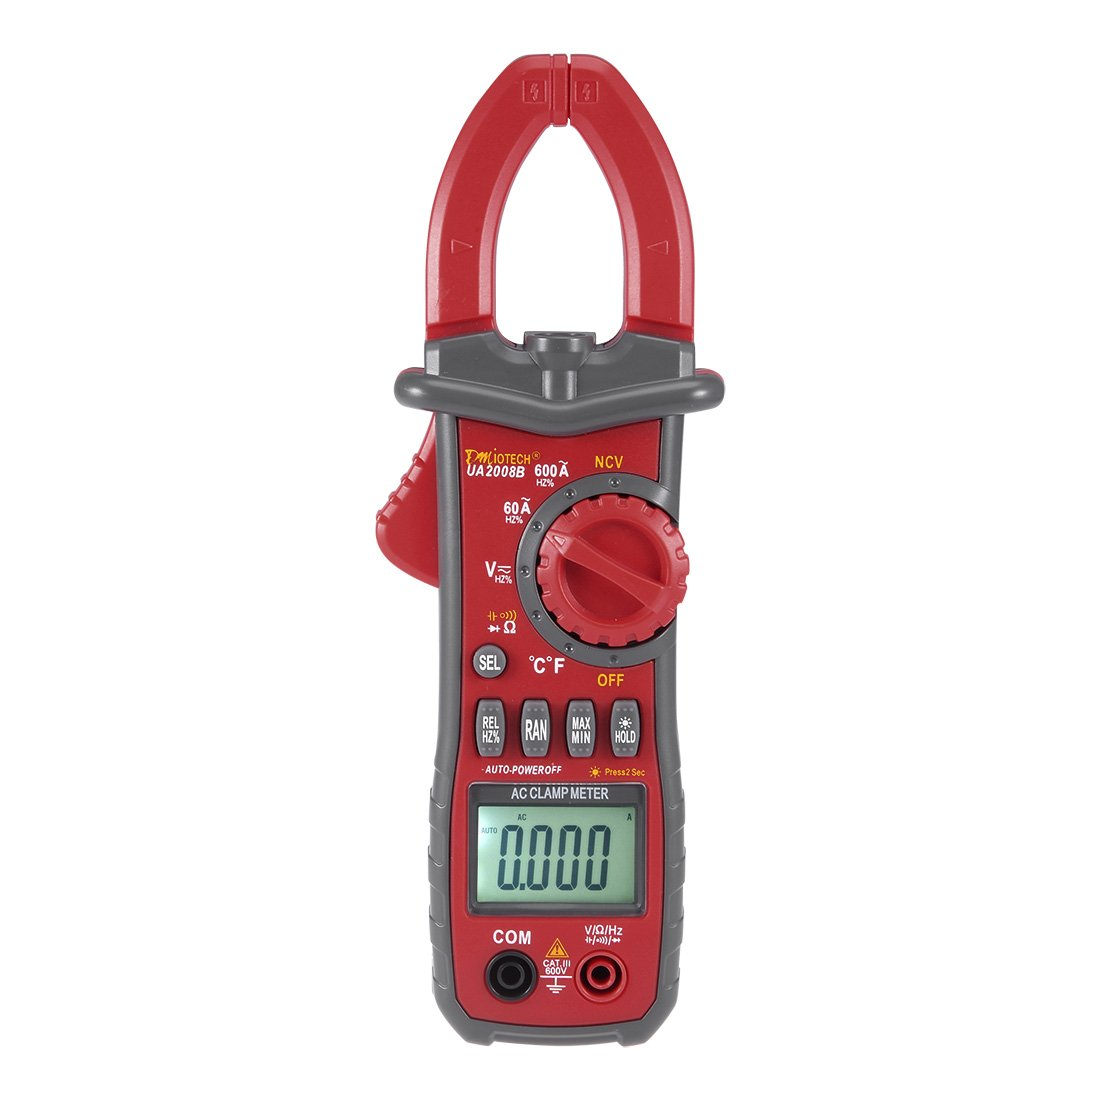 UA2008B 600A AC Clamp Meter Multimeter Testing AC Current,AC/DC Voltage,Resistance,Capacitance,Temperature,Frequency with Clamp Flashlight